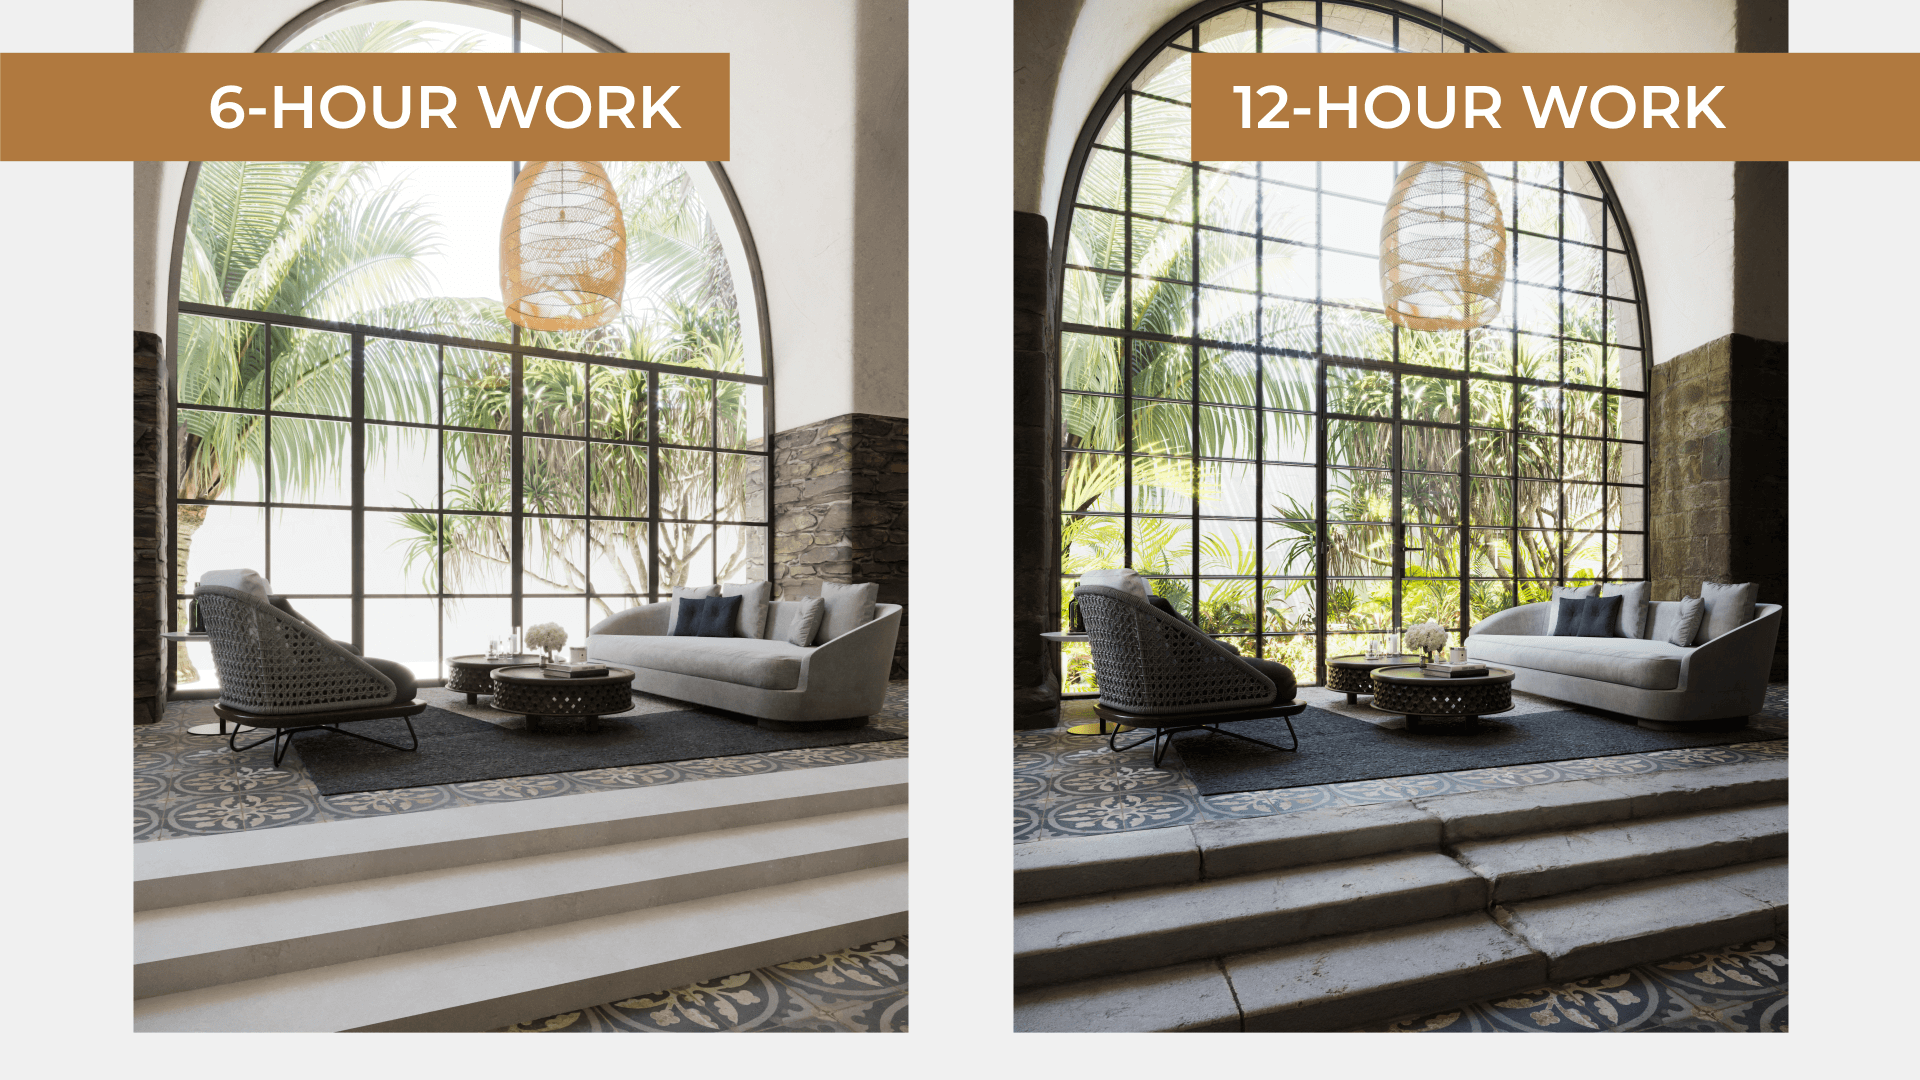 Comparison Collage of Two 3D Renders of the Same Interior